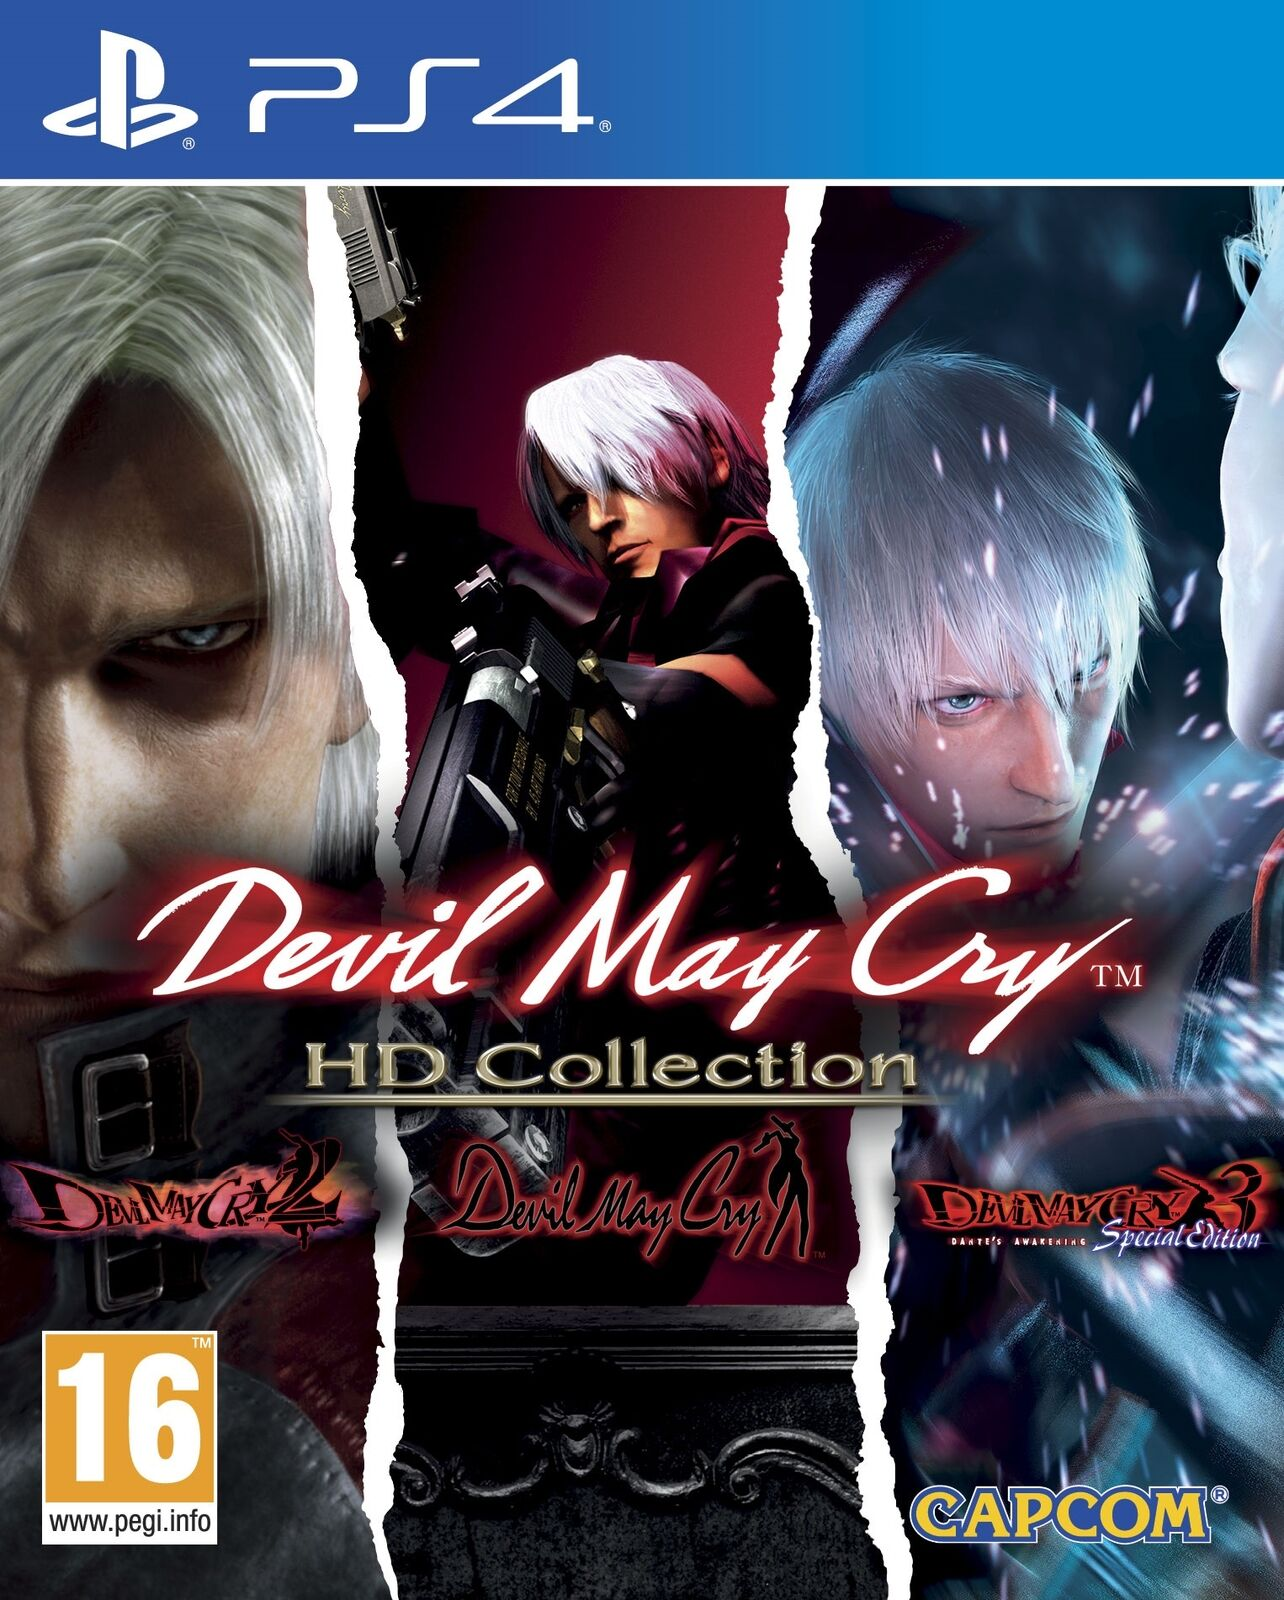 Devil May Cry Hd Collection Ps4 163 19 85 Picclick Uk